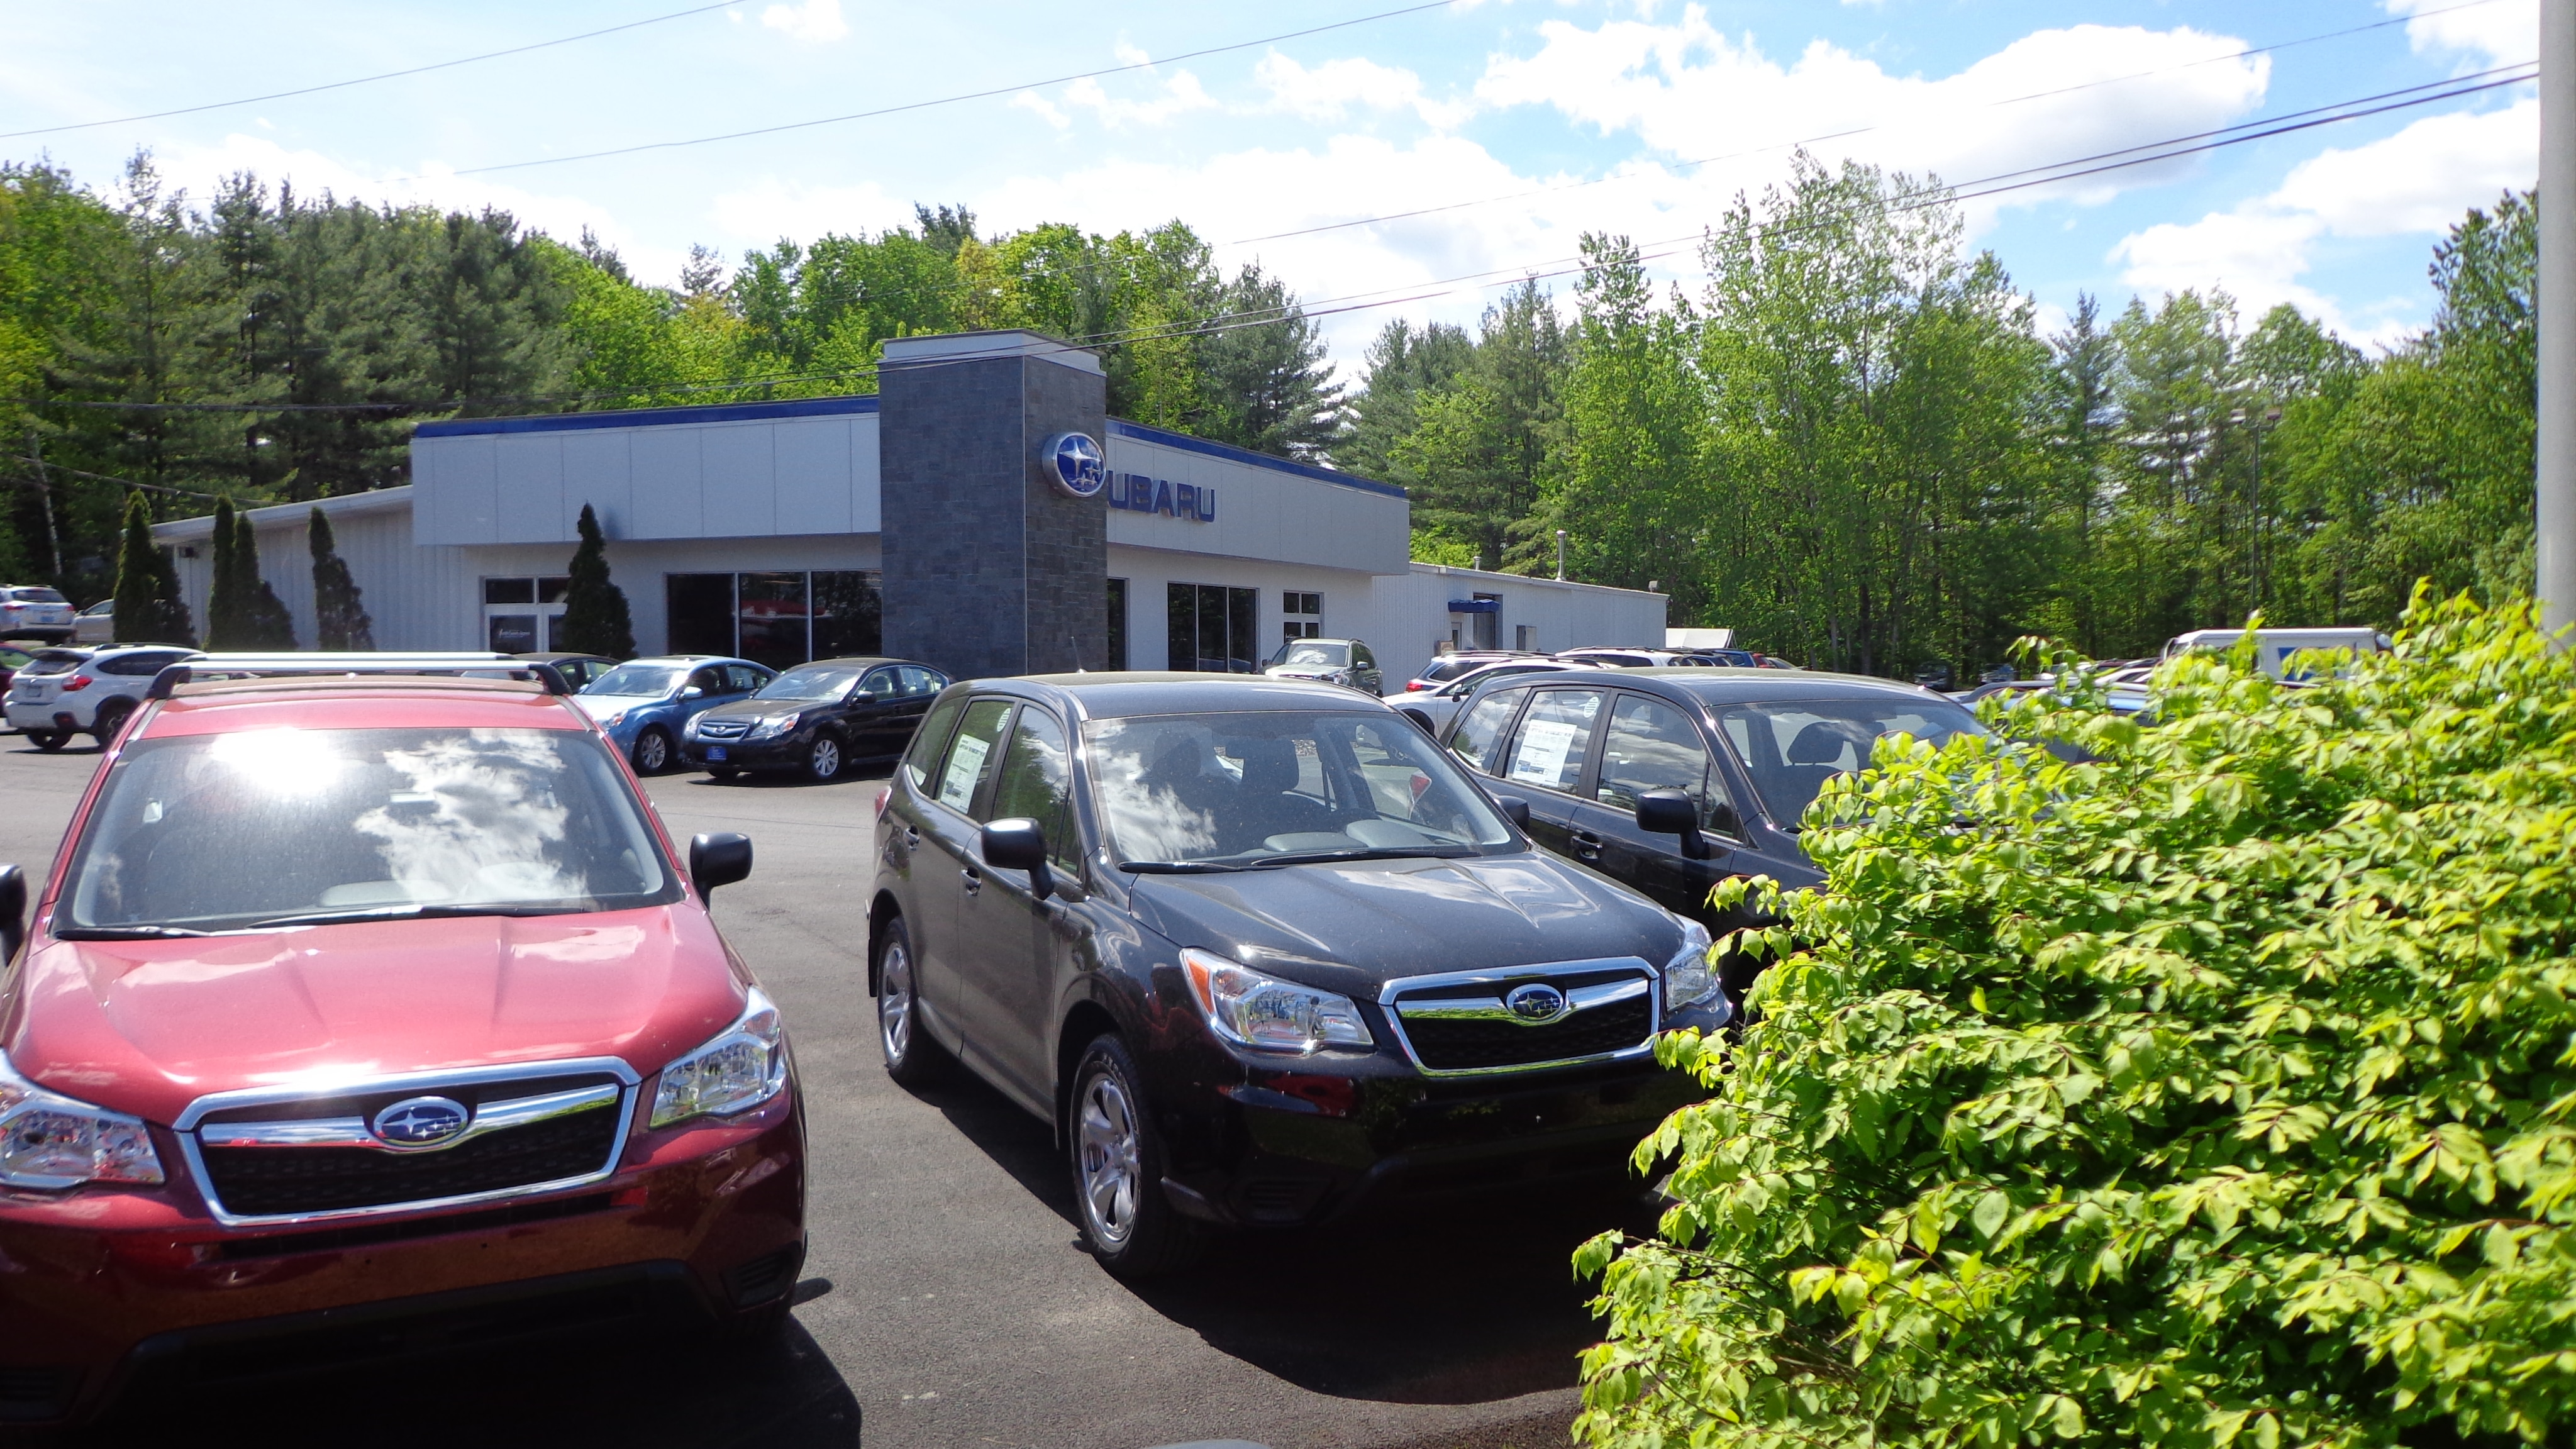 north country subaru new and used subaru dealership in queensbury troy schenectady ny area. Black Bedroom Furniture Sets. Home Design Ideas